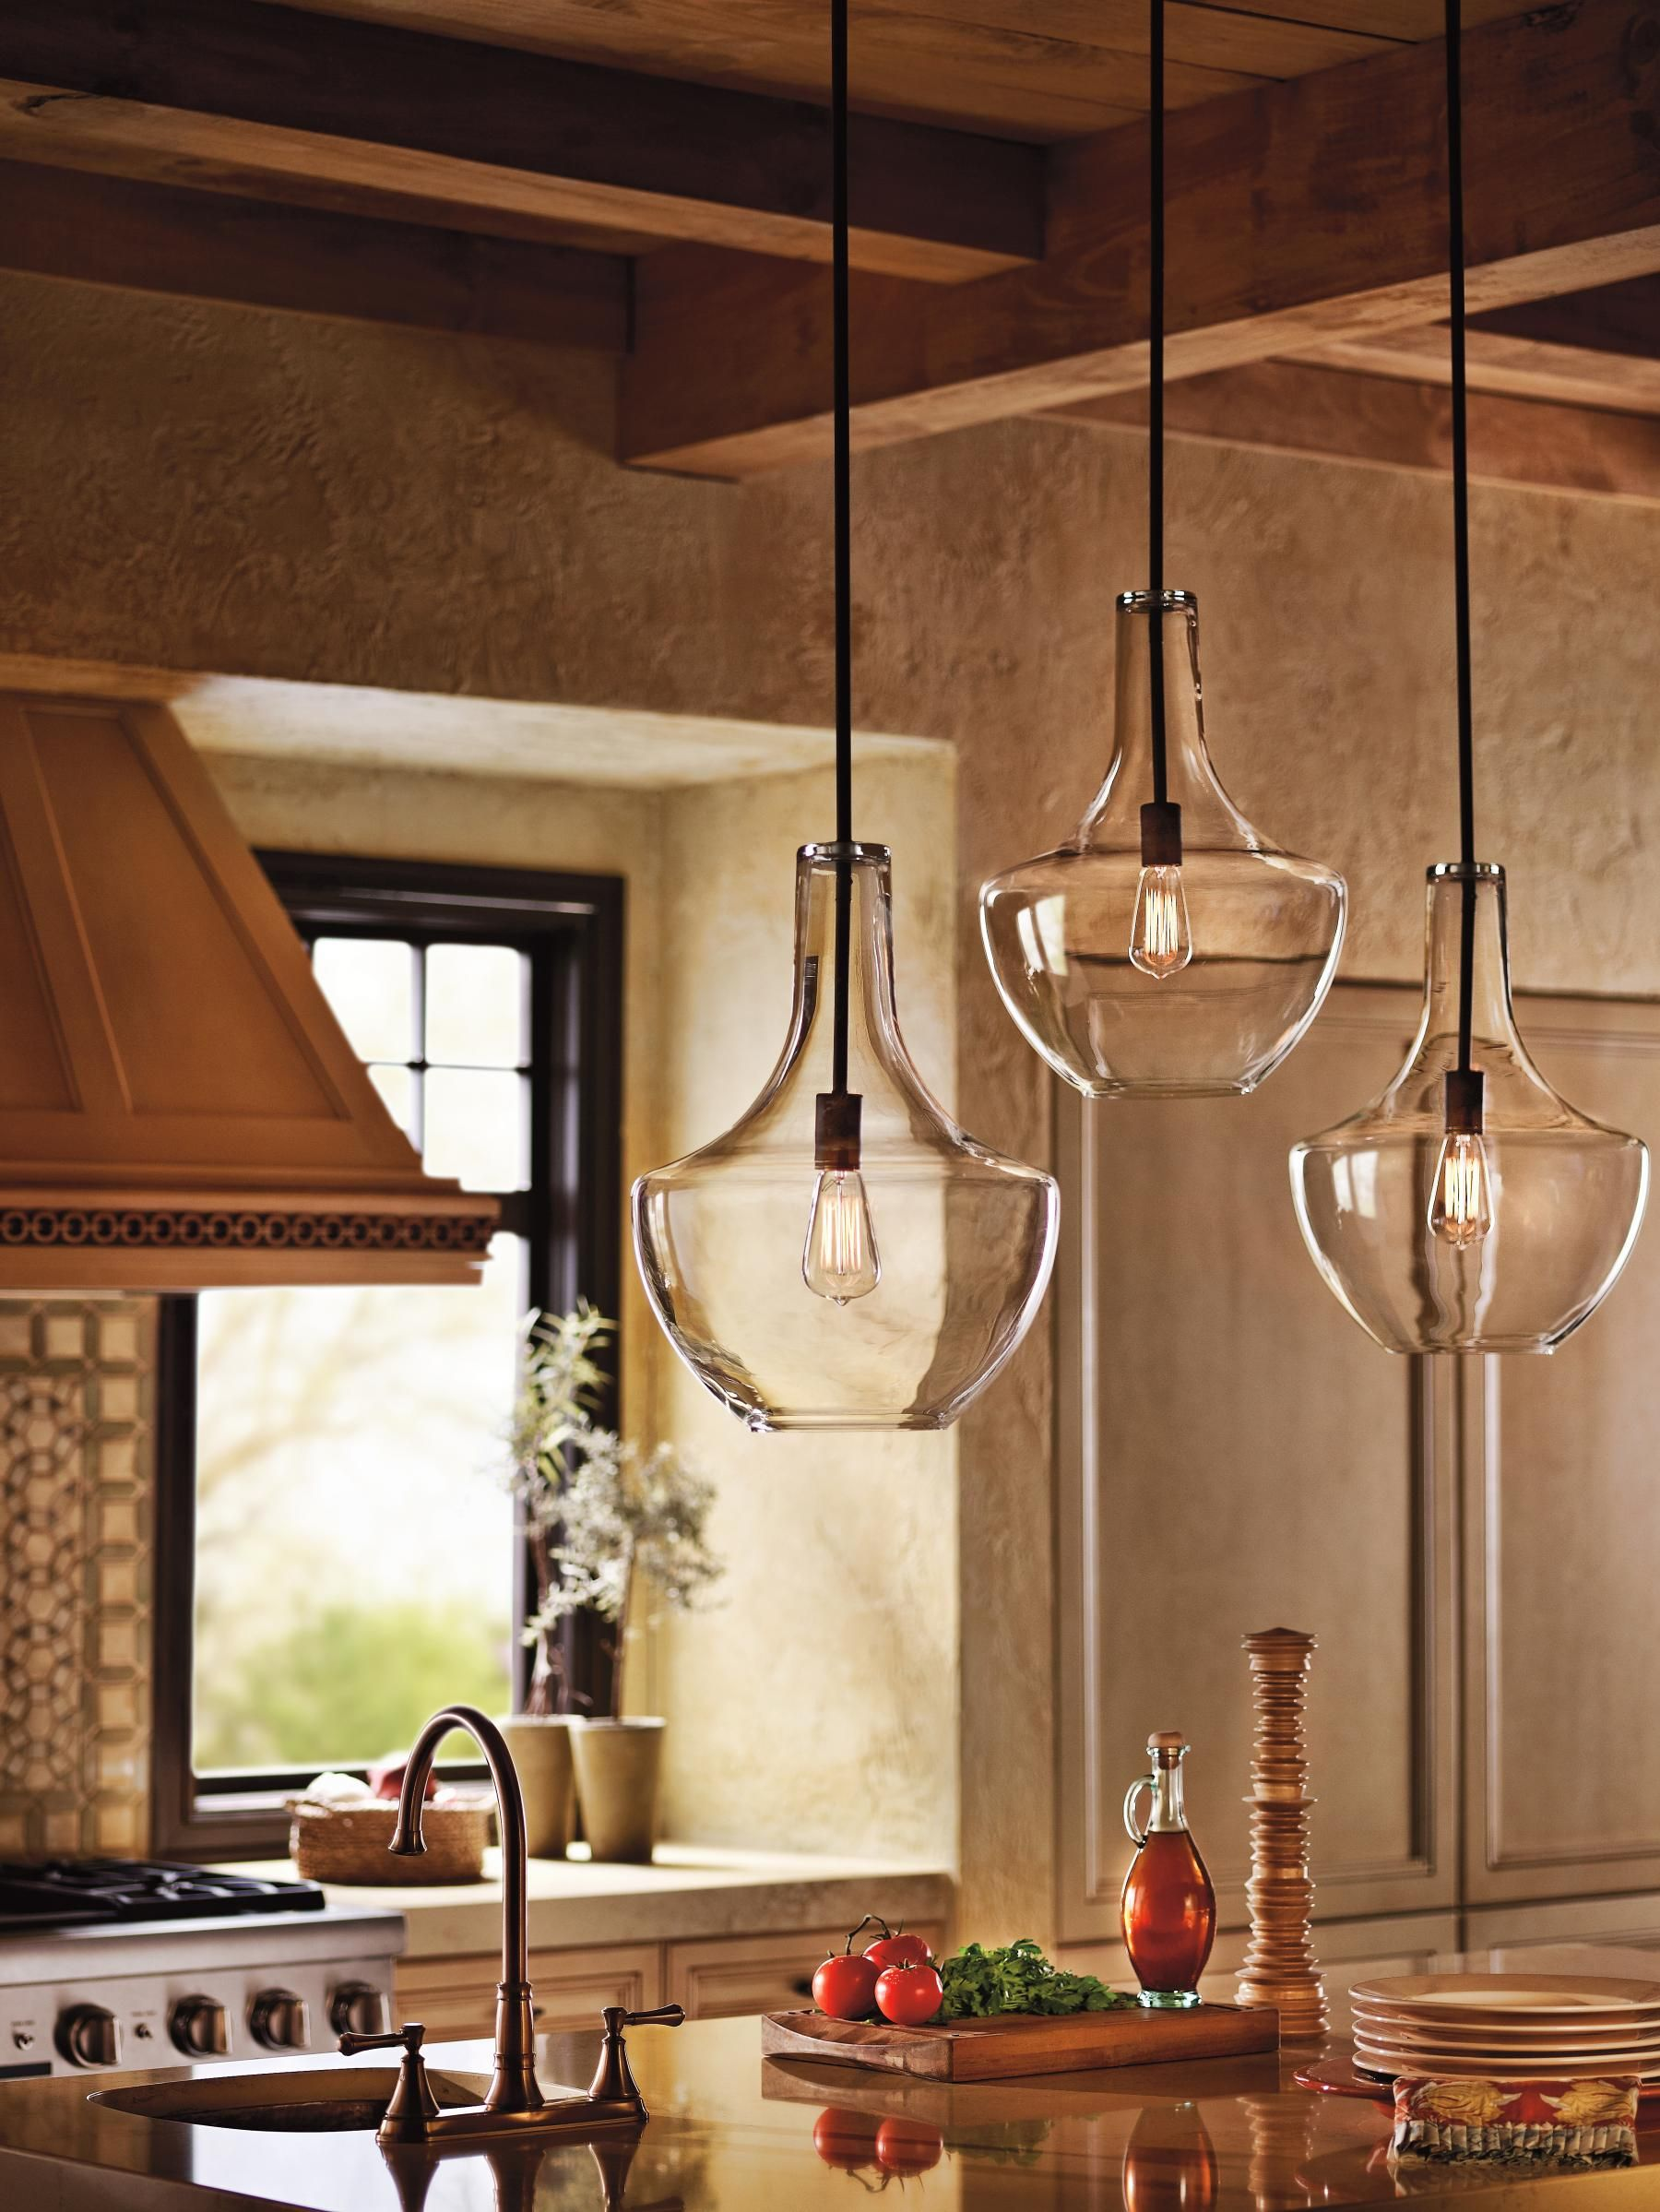 Clear Glass Pendant Lights For Kitchen Island This Transitional Style Pendant Is A Perfect Option To Light Up